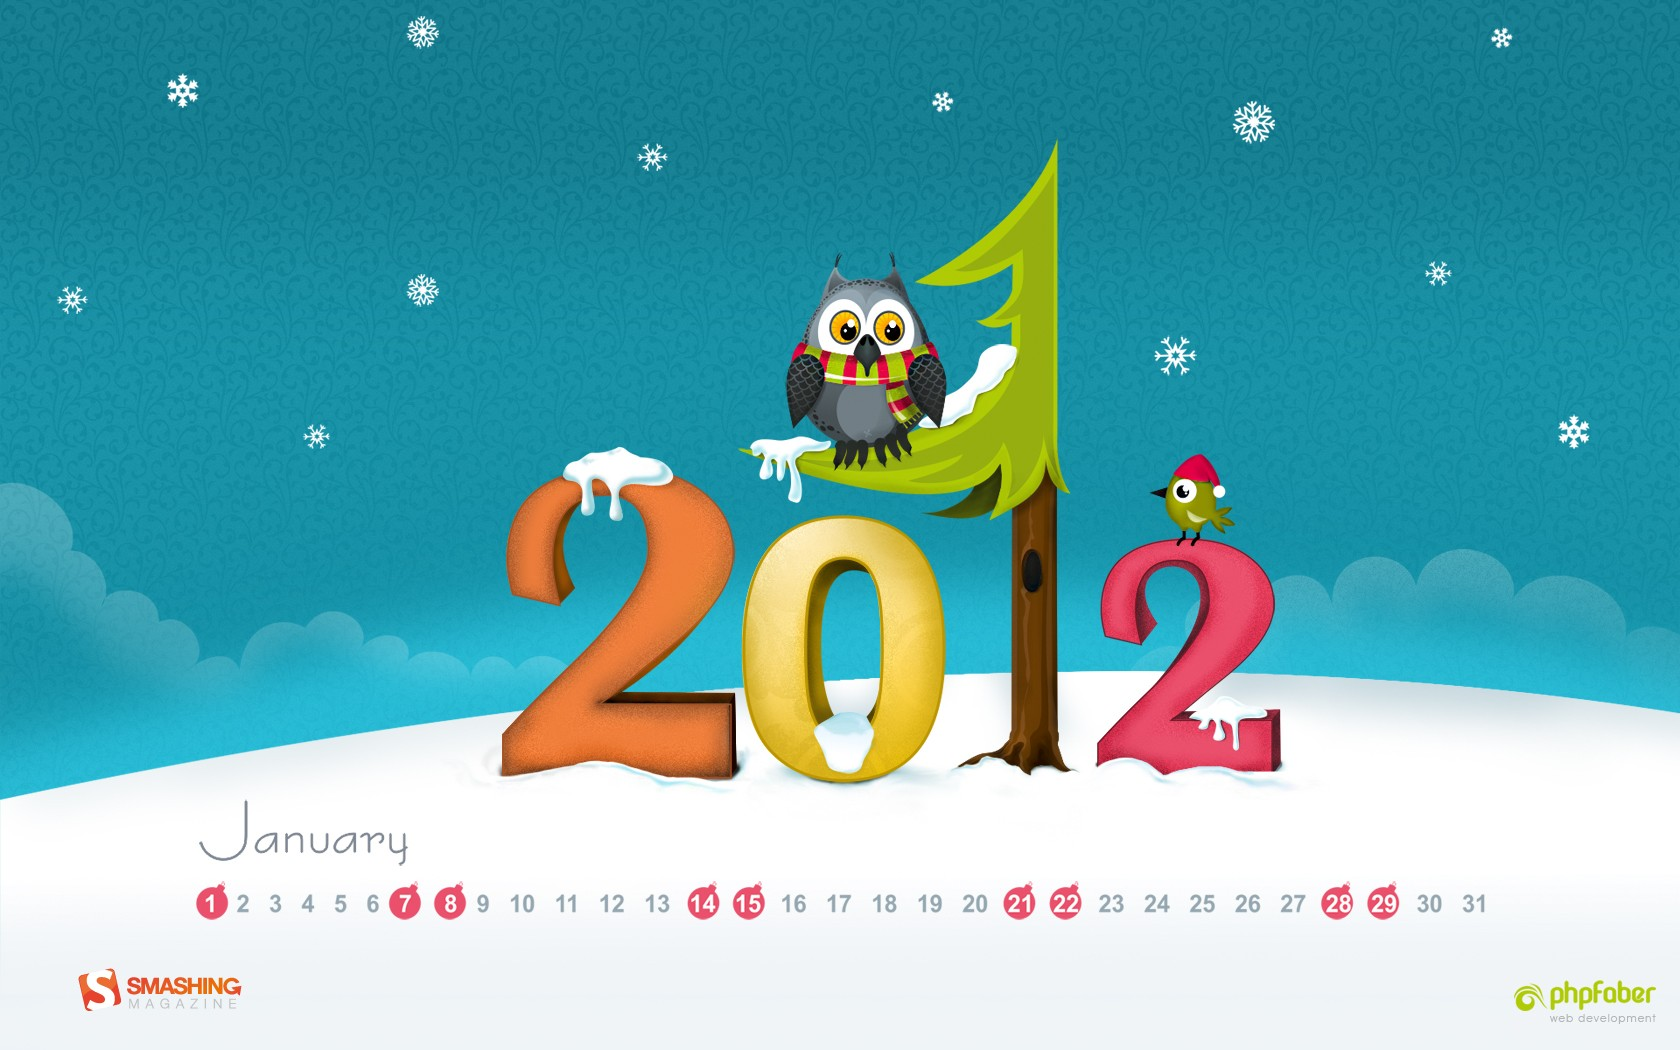 In January Calendar Wallpaper 31322